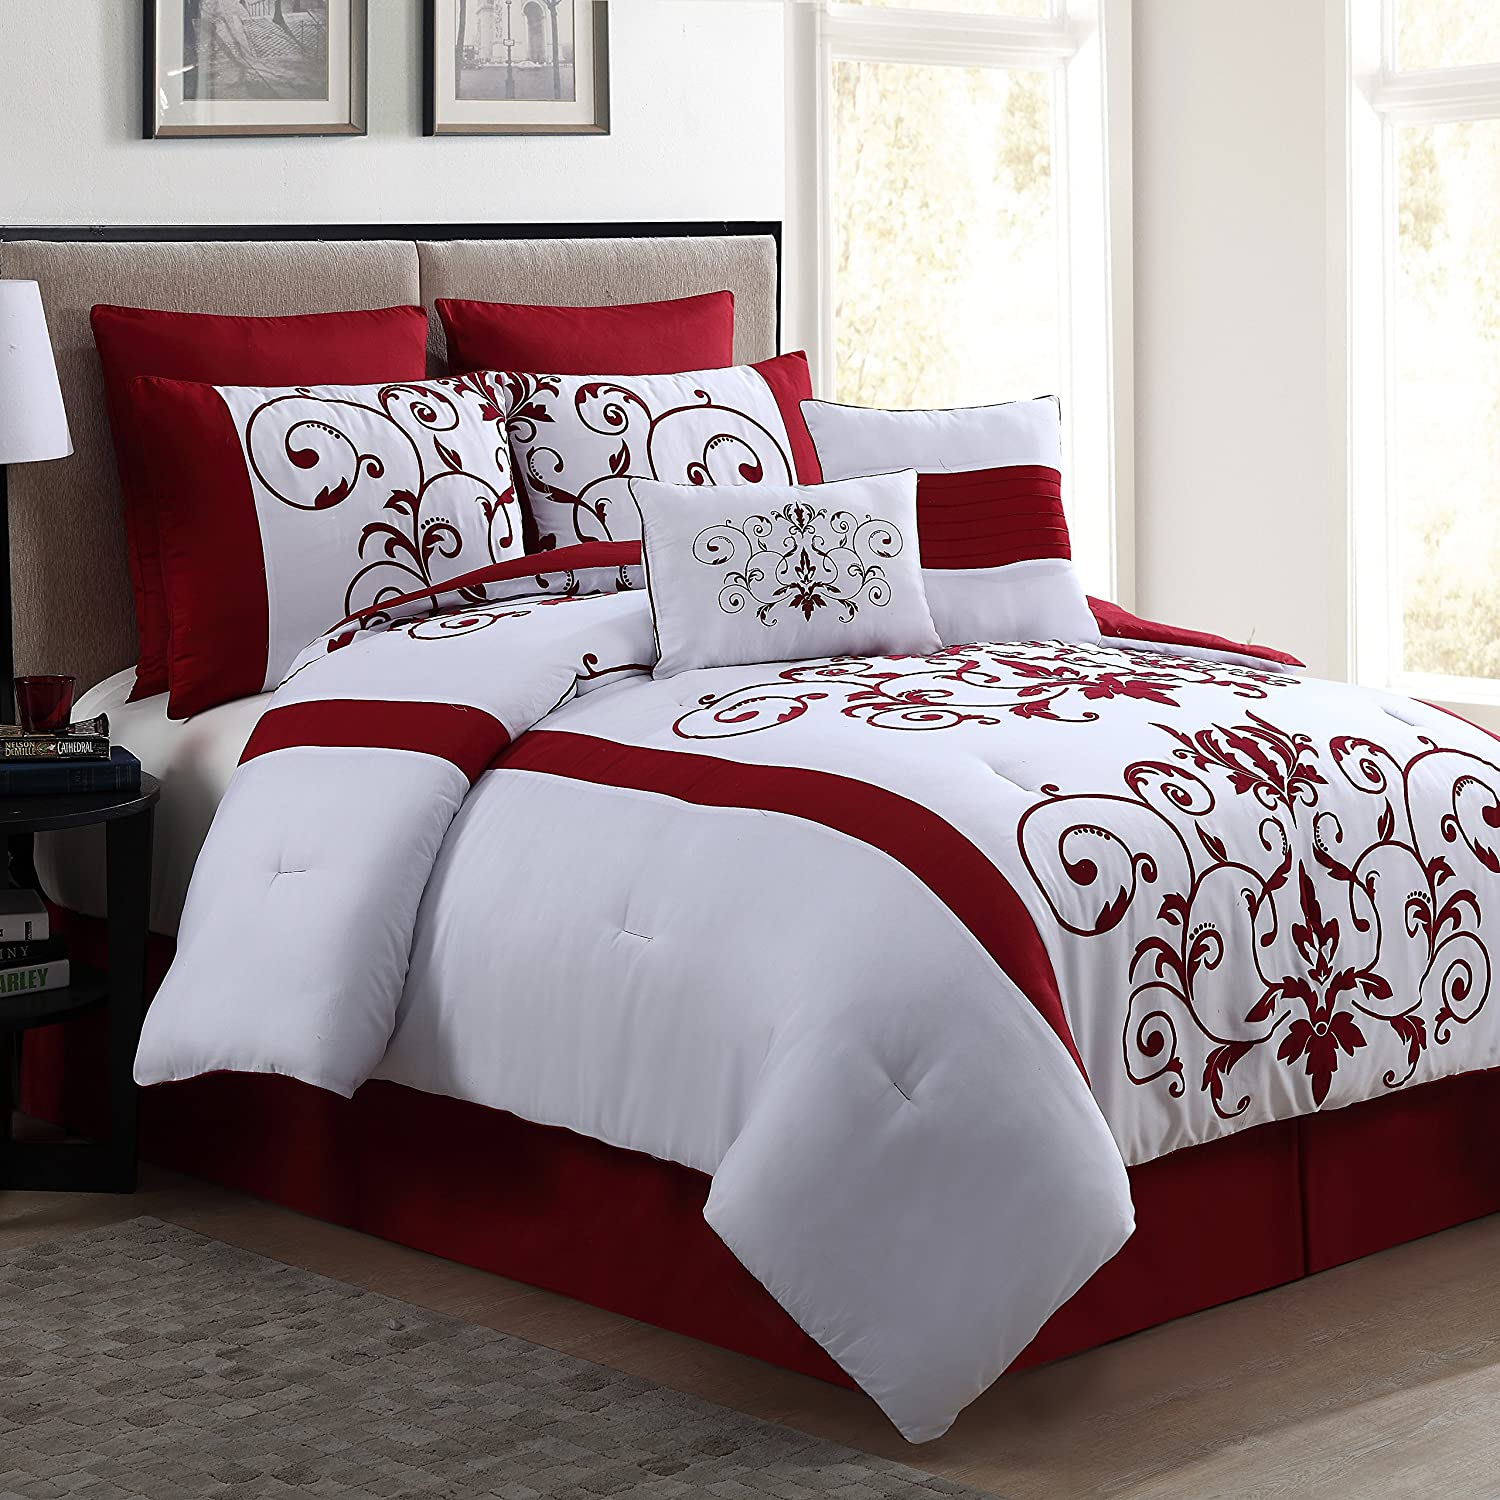 Red Sheets Sets